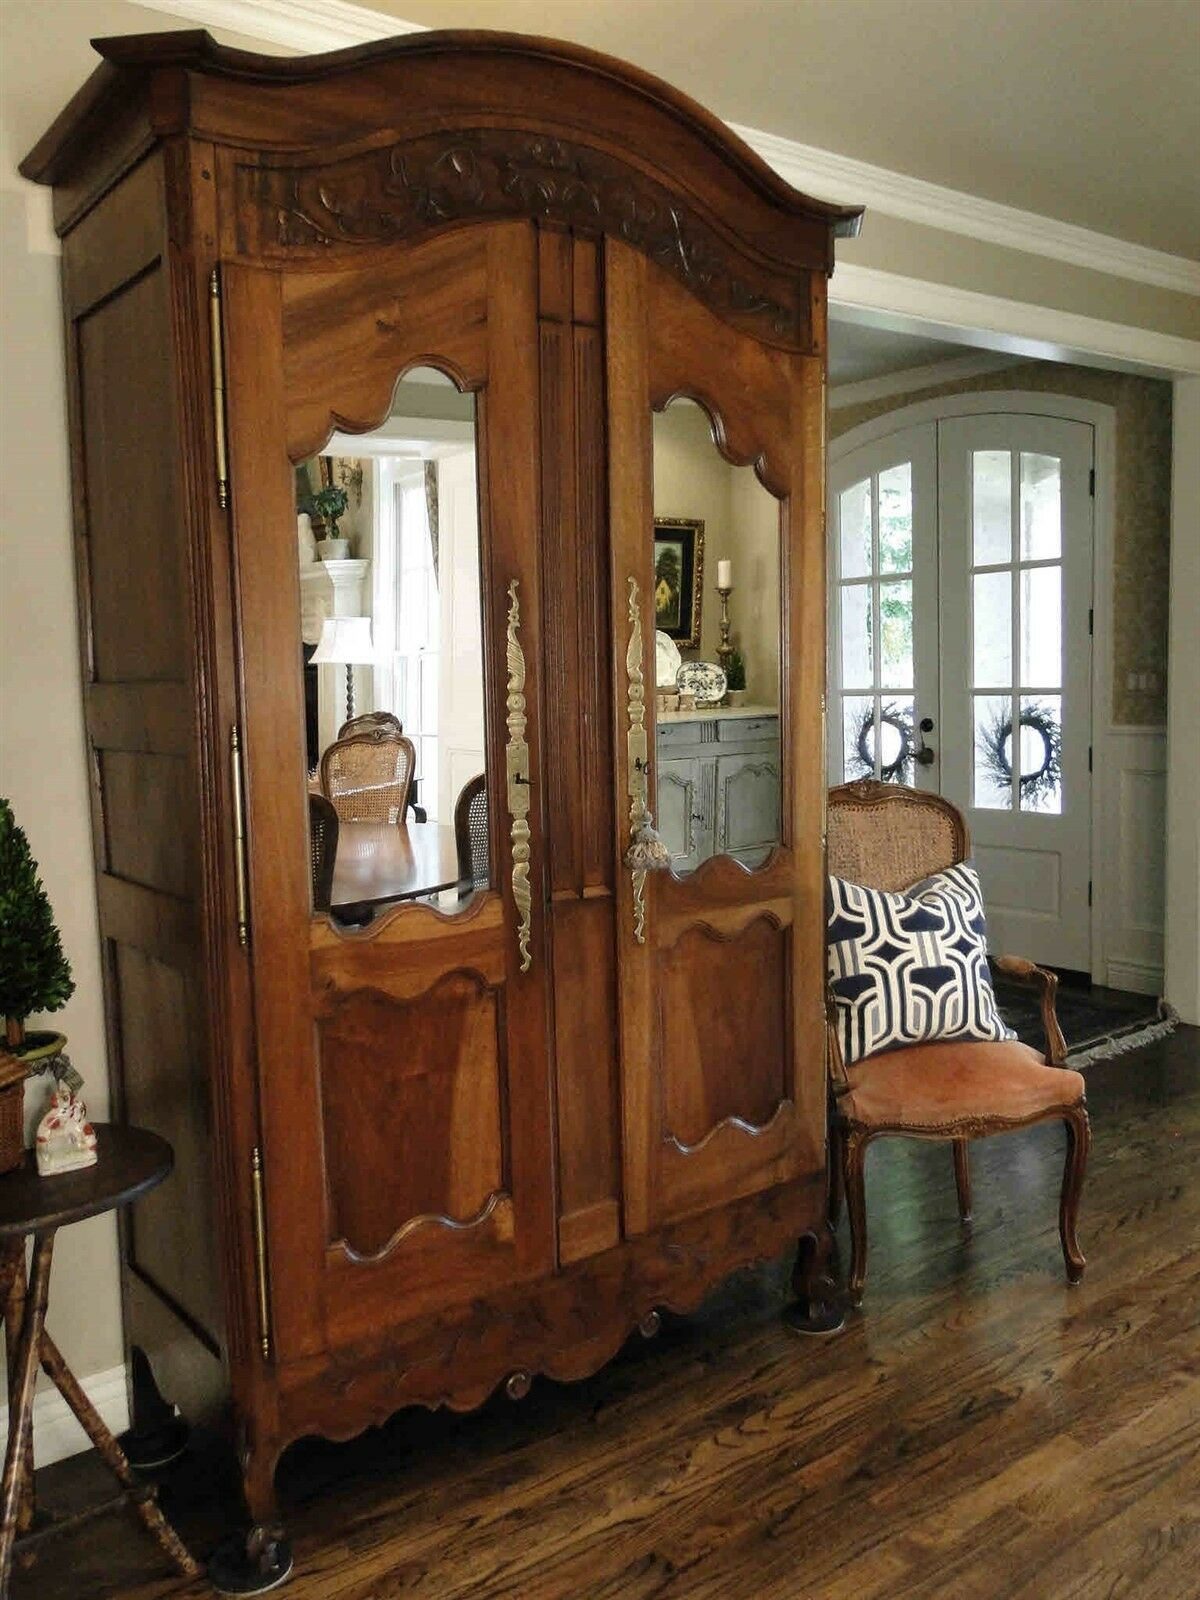 Antique French Country Wedding Armoire  Mirror Paneled Doors Fitted shelves